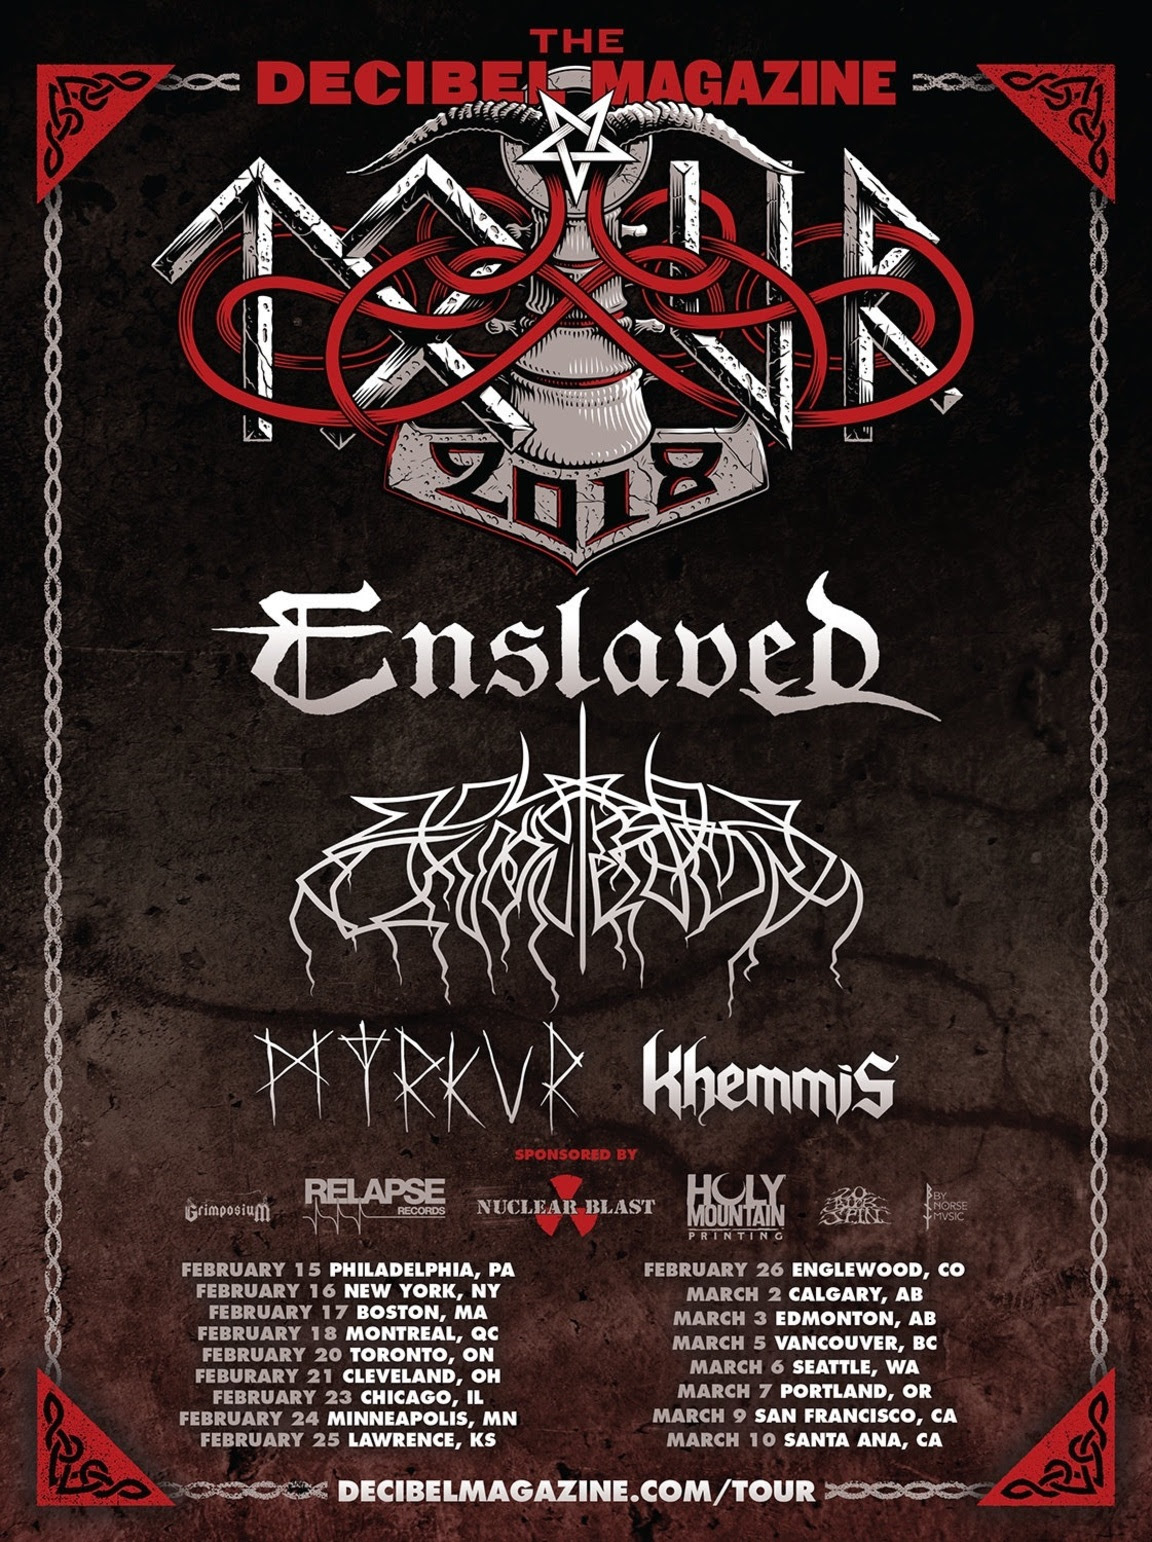 2018's Decibel Tour to feature Enslaved, Wolves in the Throne Room, Myrkur and Khemmis (Montreal Feb. 18) 1